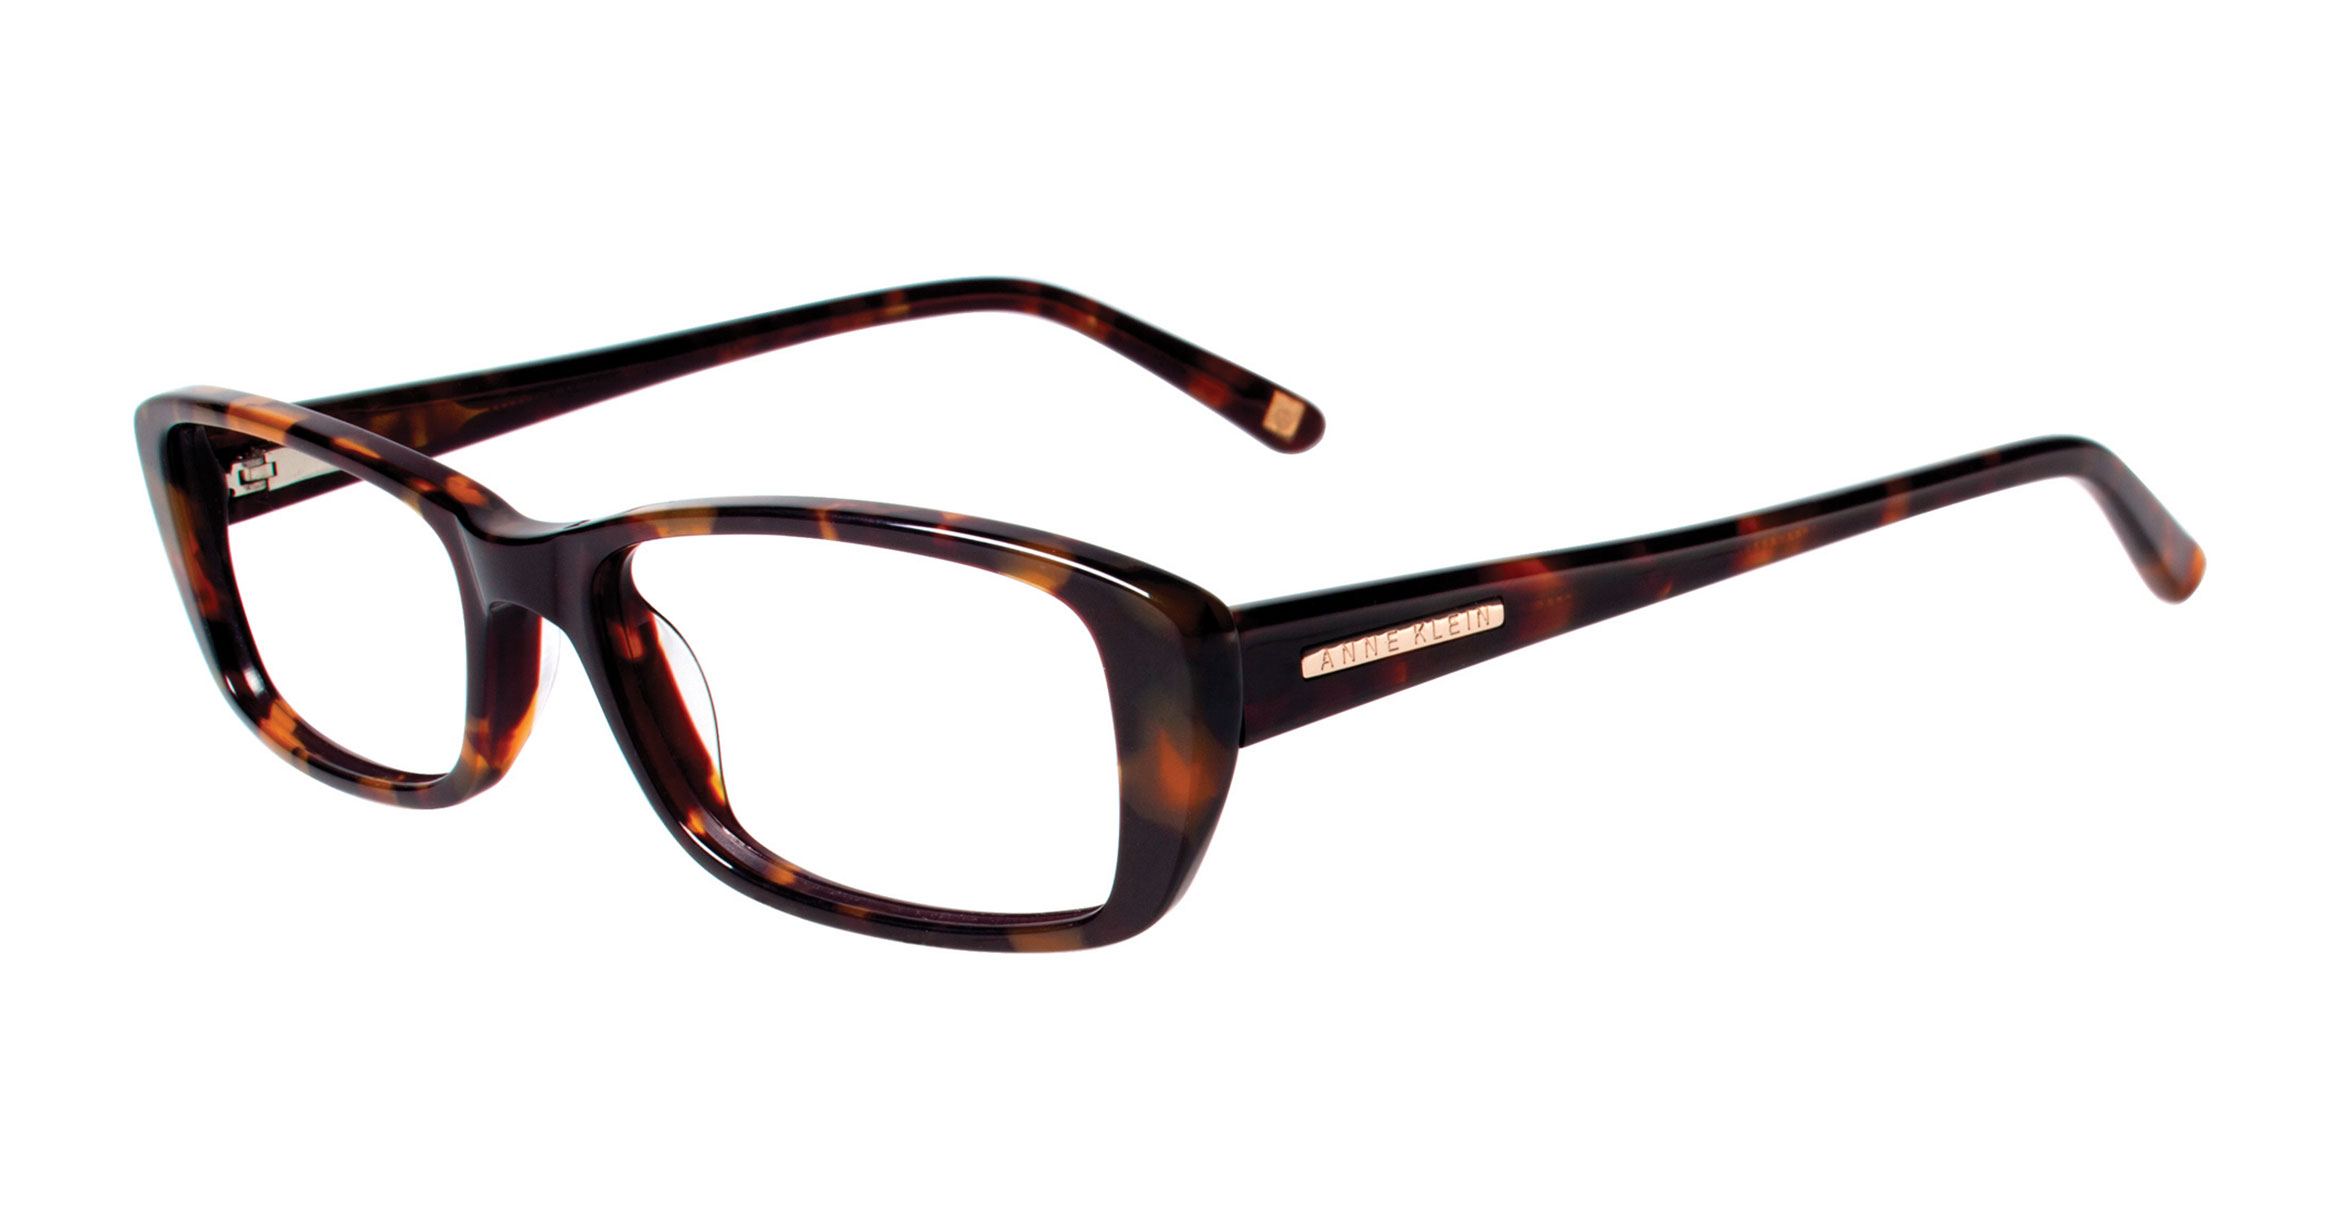 58a3bcfb39601 ... coupon code for wing eyecare eyeglasses sunglasses oakley ray ban more  6ee7a 6cdae